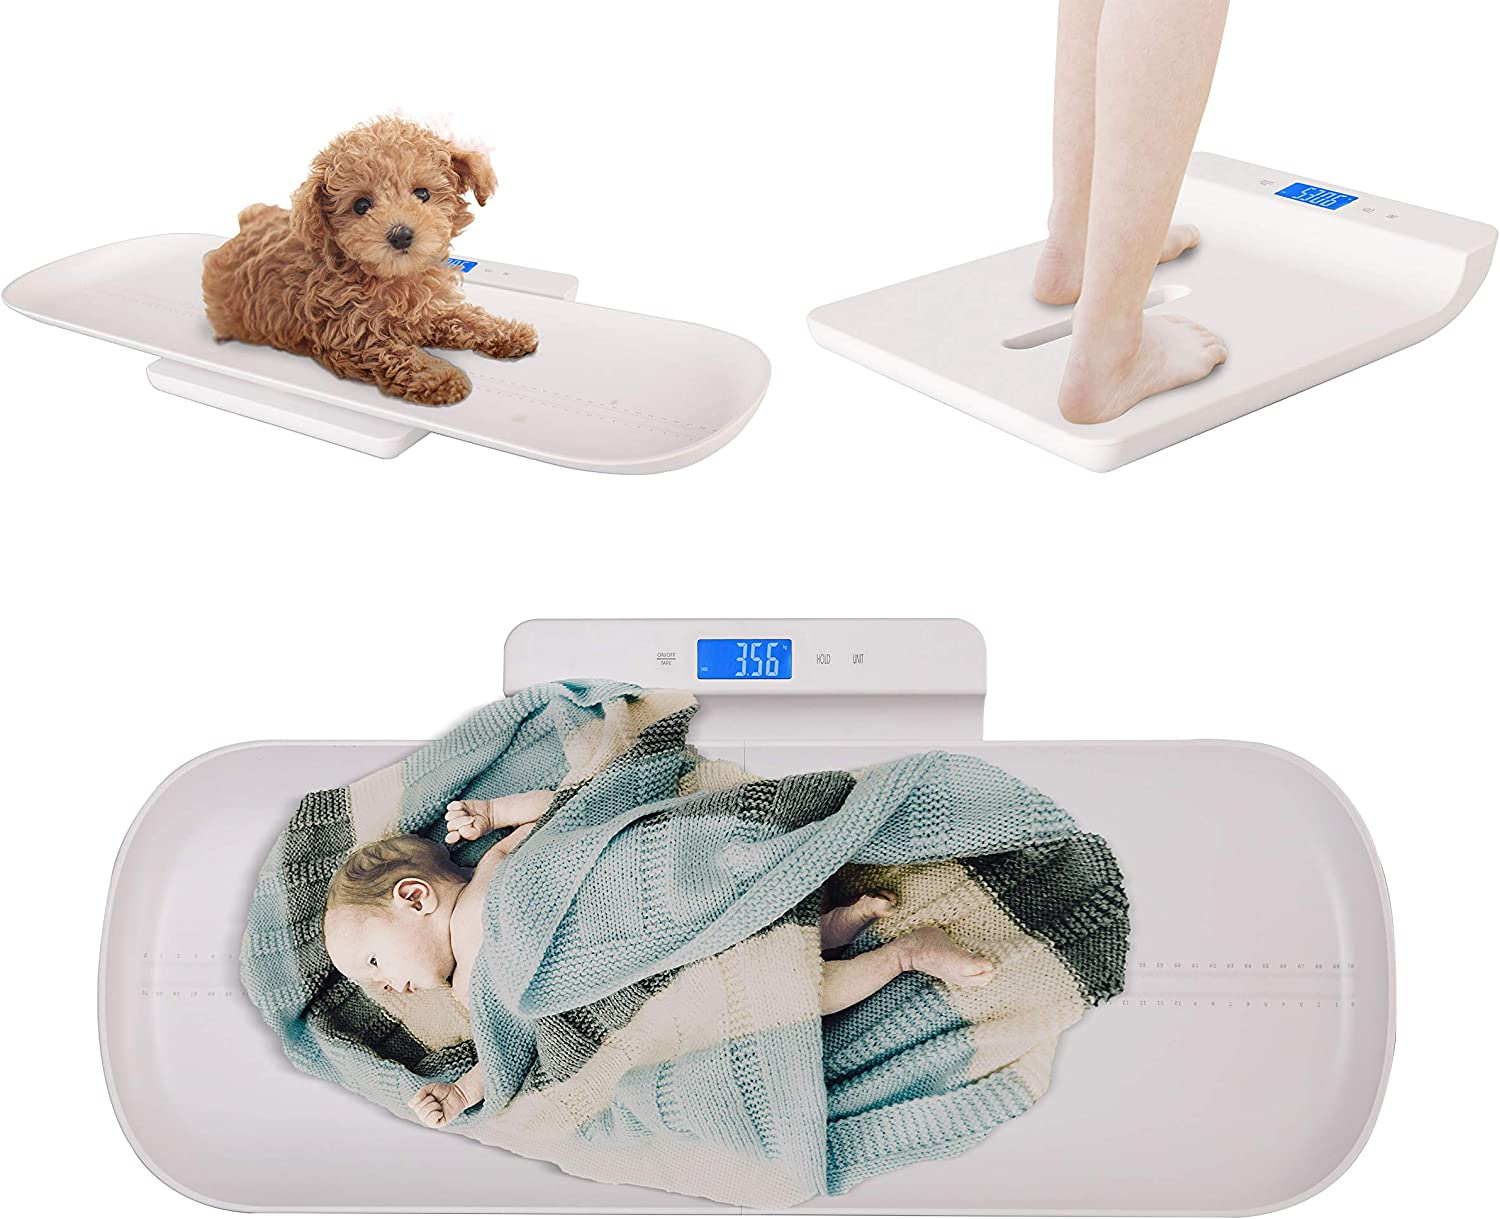 baby scale for breastfeeding